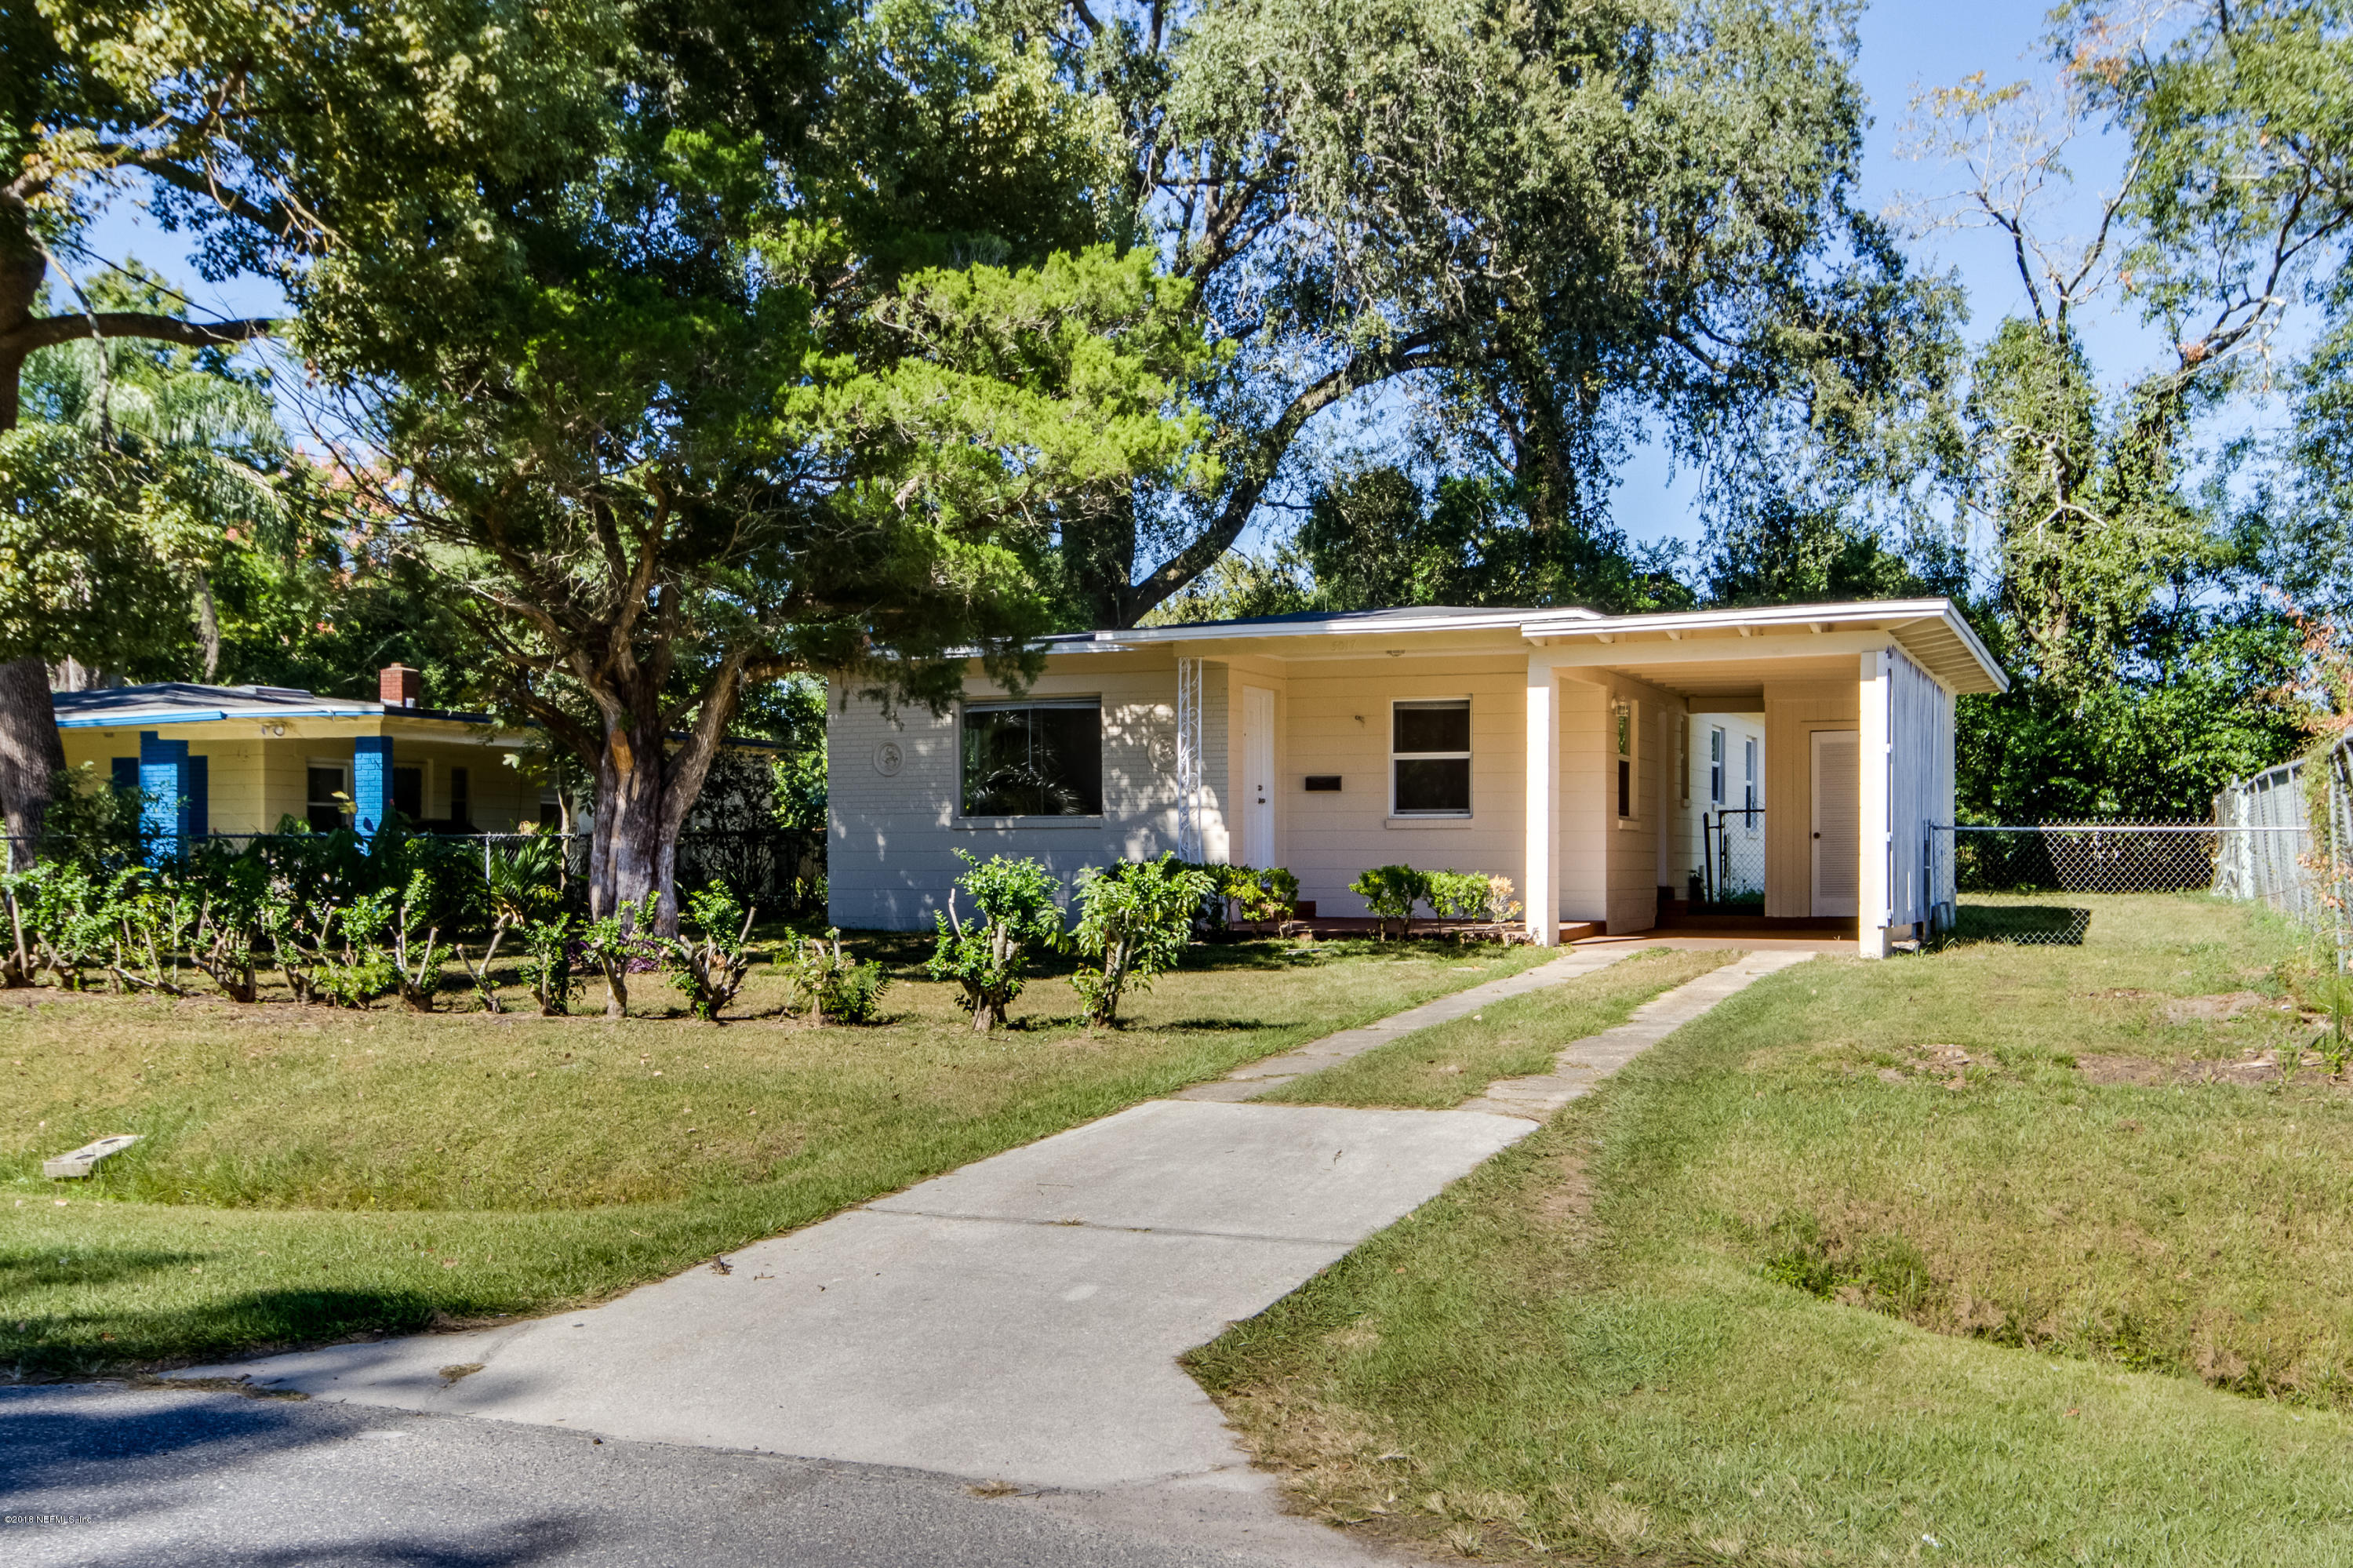 5017 GLENWOOD, JACKSONVILLE, FLORIDA 32205, 3 Bedrooms Bedrooms, ,1 BathroomBathrooms,Residential - single family,For sale,GLENWOOD,964822